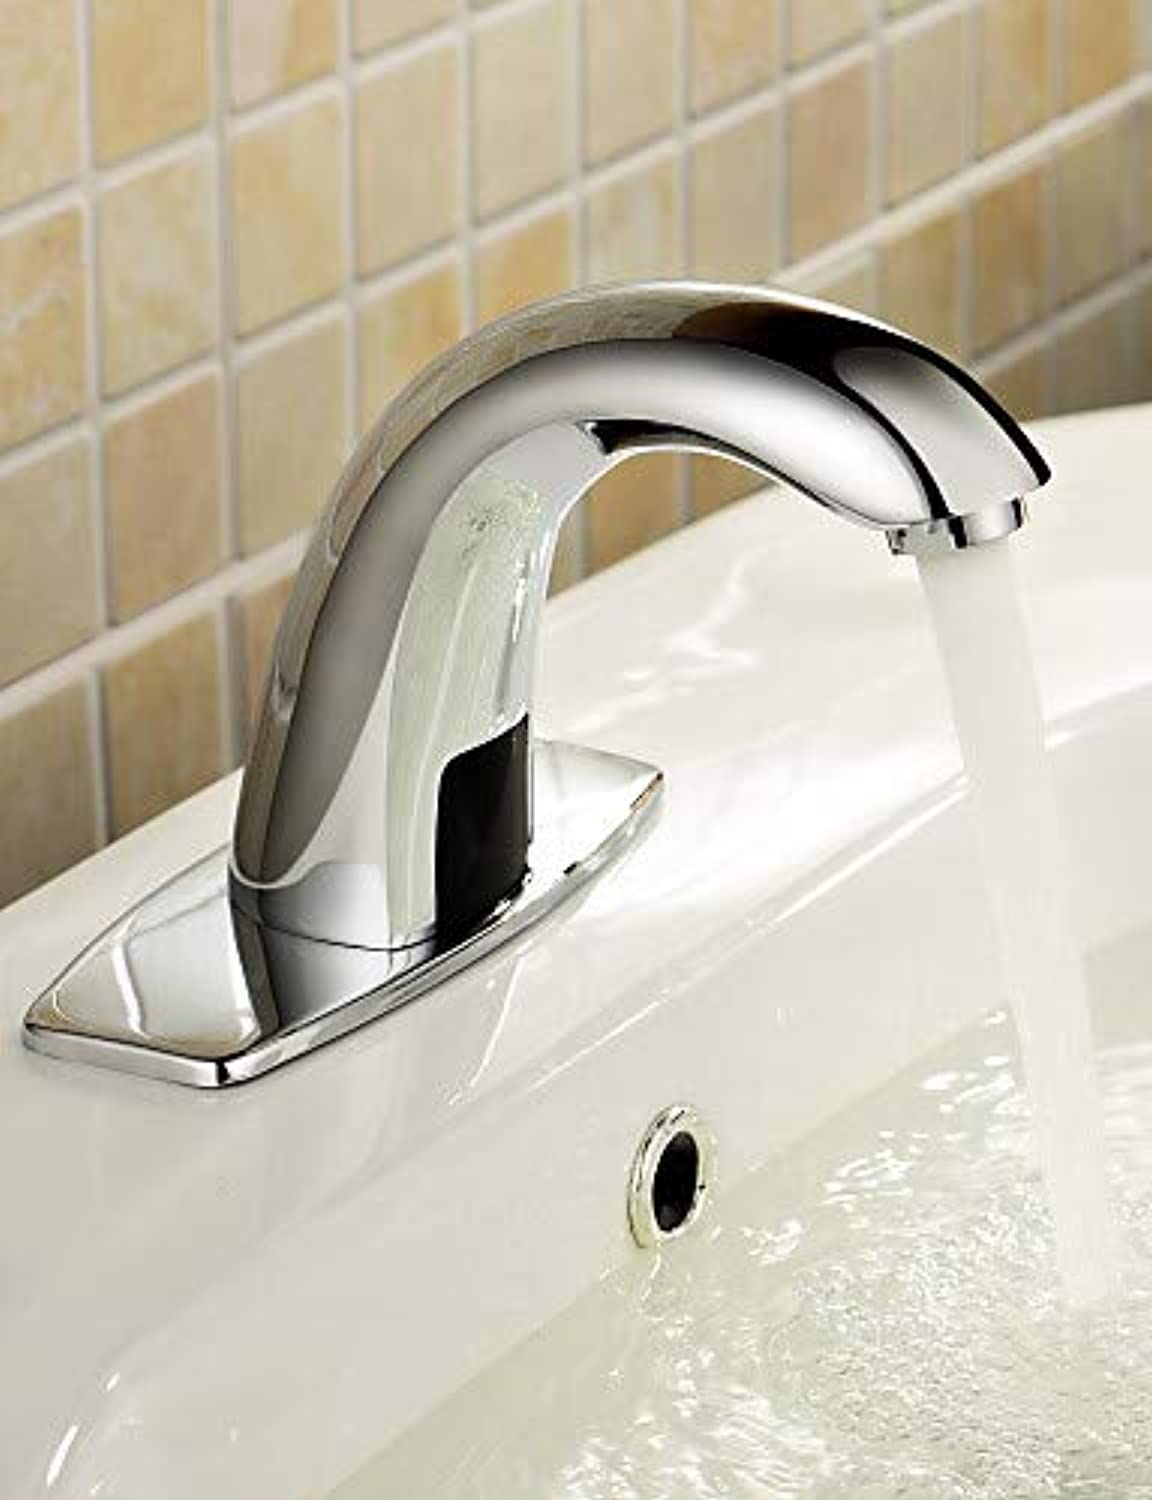 Mainstream home LPZSQ Tap Bathroom Sink Faucets Contemporary Touch Touchless Brass Chrome  292